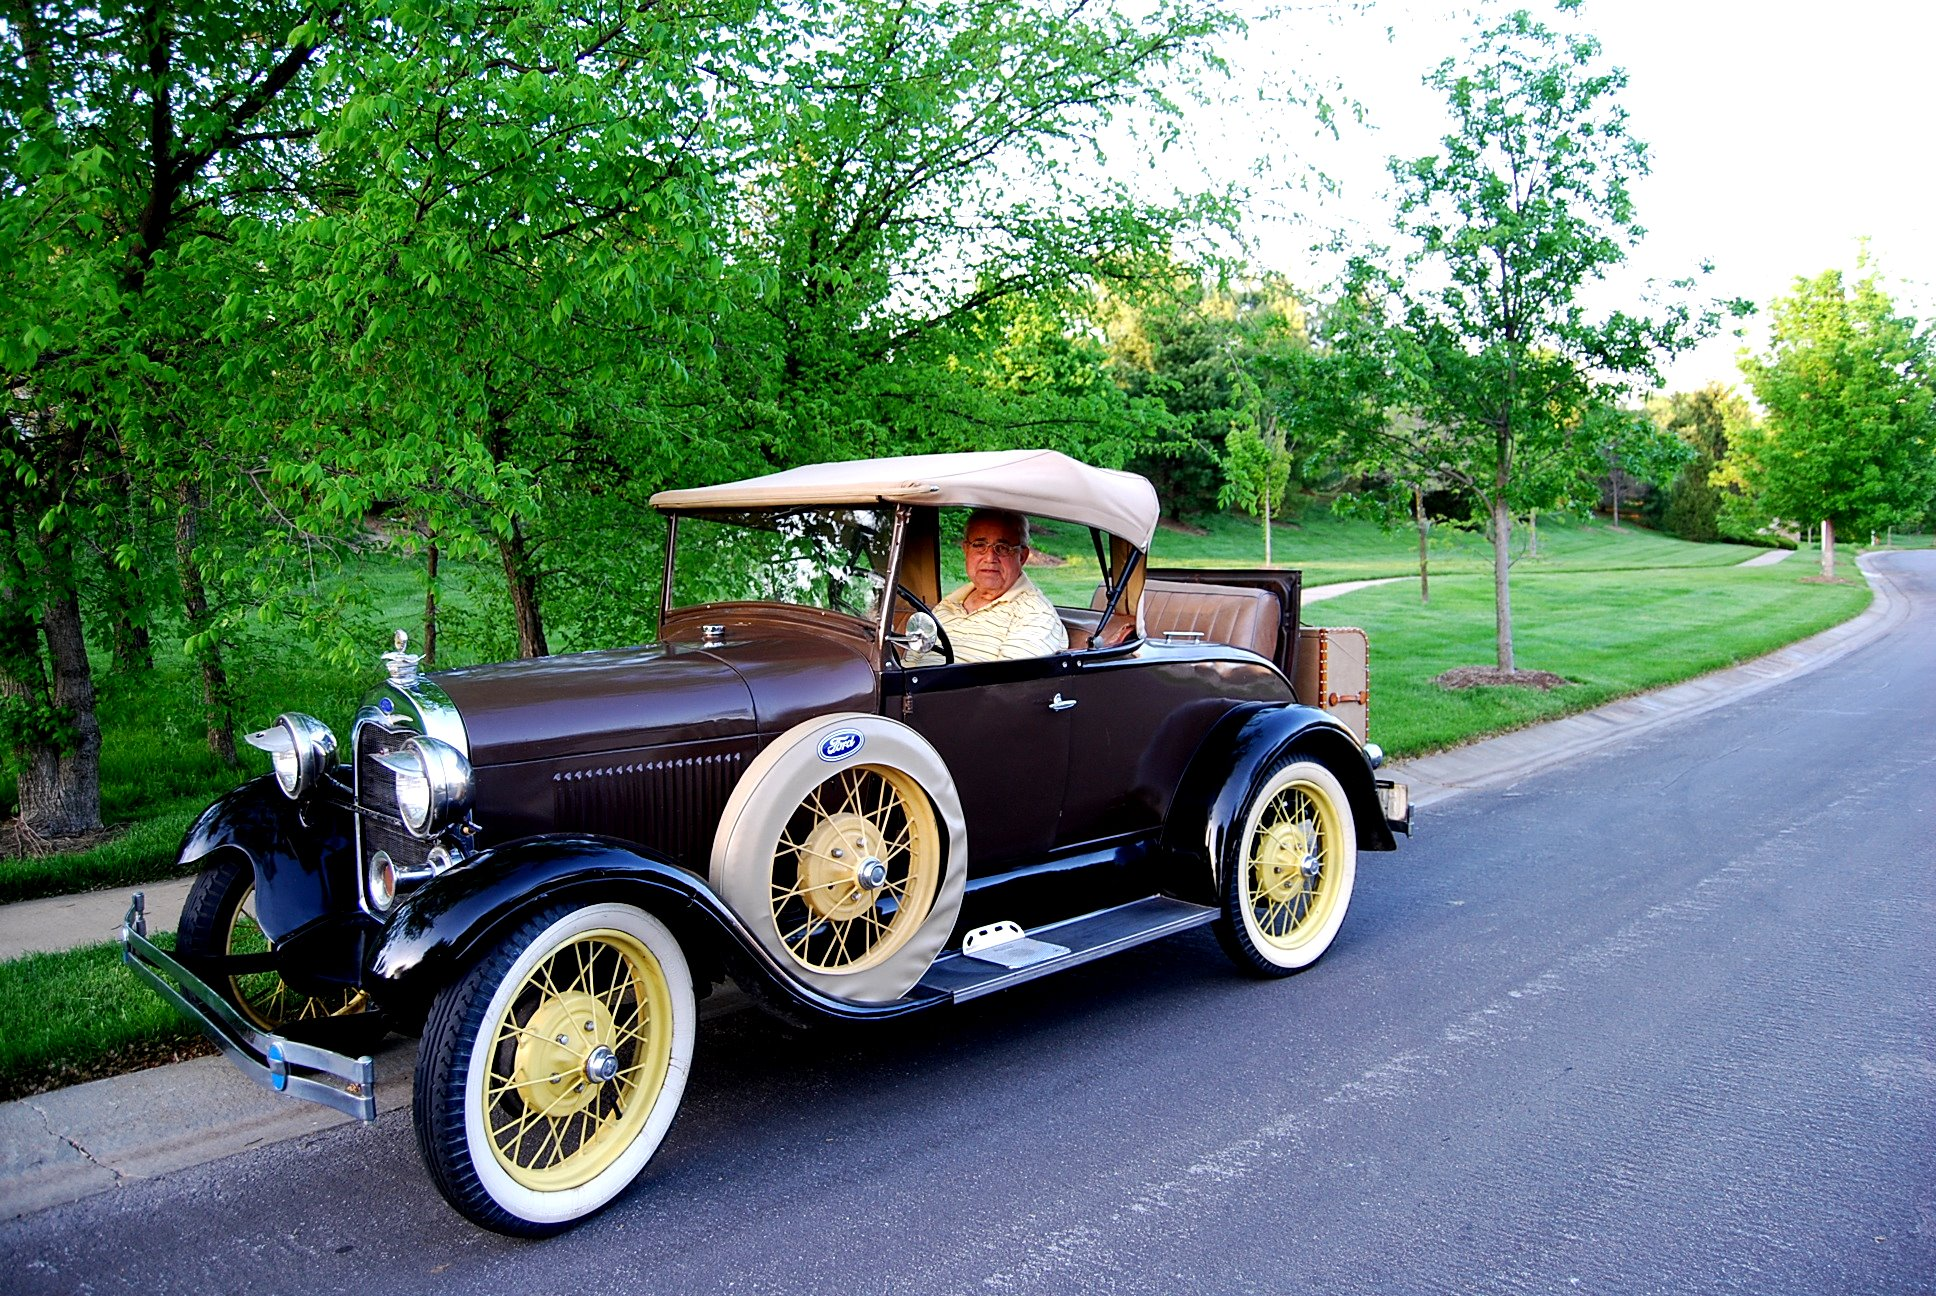 1928 Ford Model A Backgrounds on Wallpapers Vista